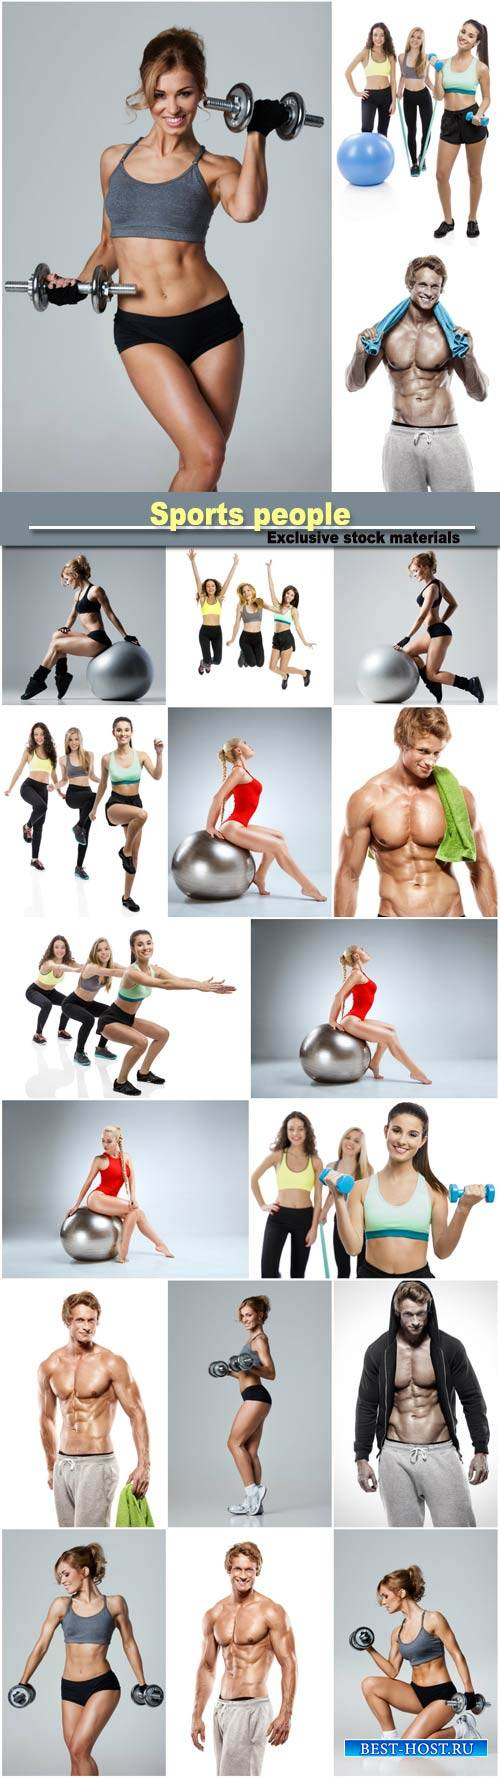 Fitness with dumbbells, group exercise classes, strong athletic muscle man